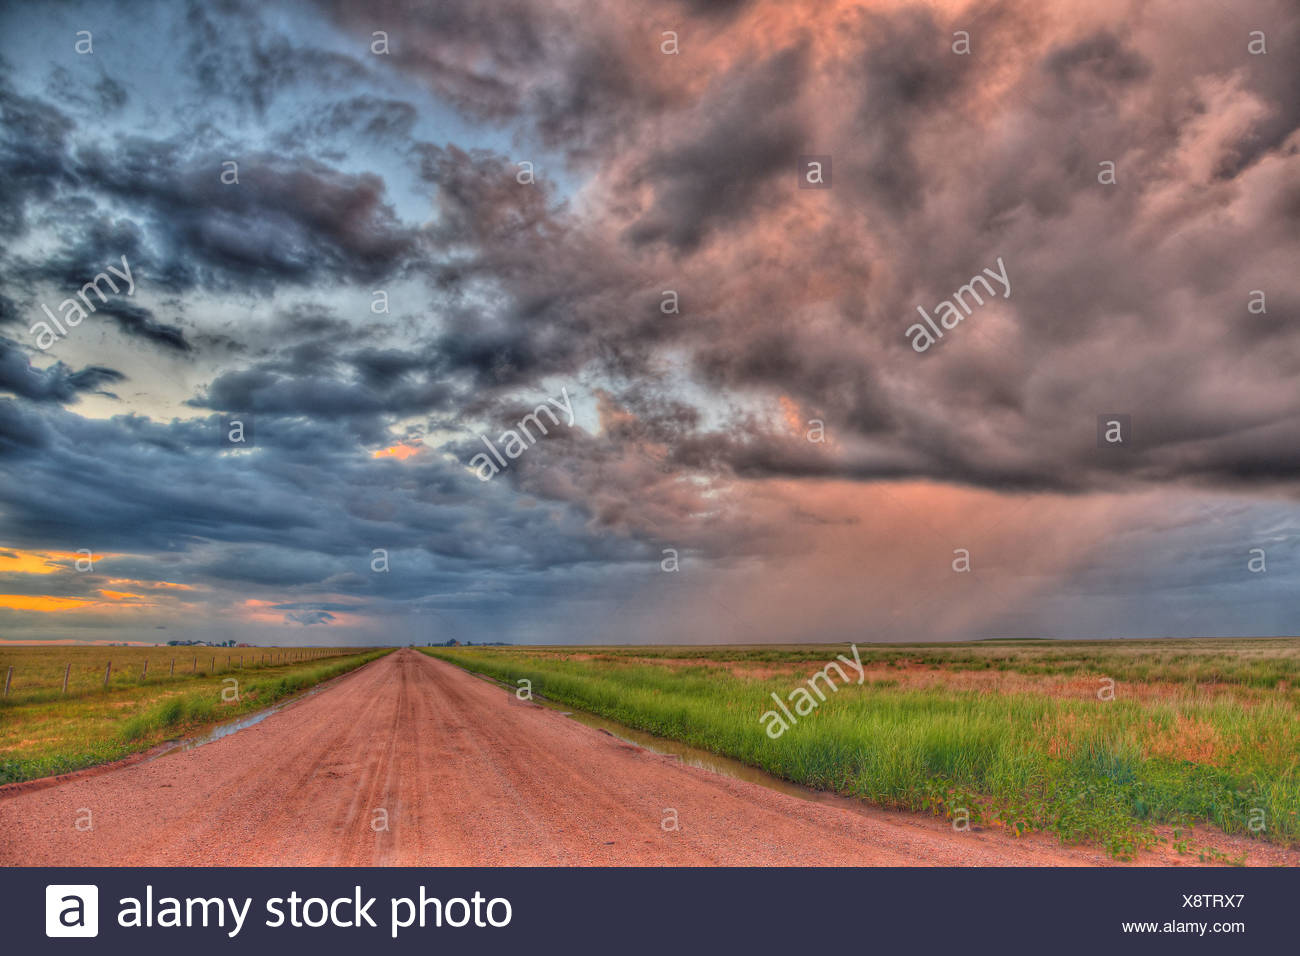 Country Dirt Road Storm High Dynamic Range Image - Stock Image